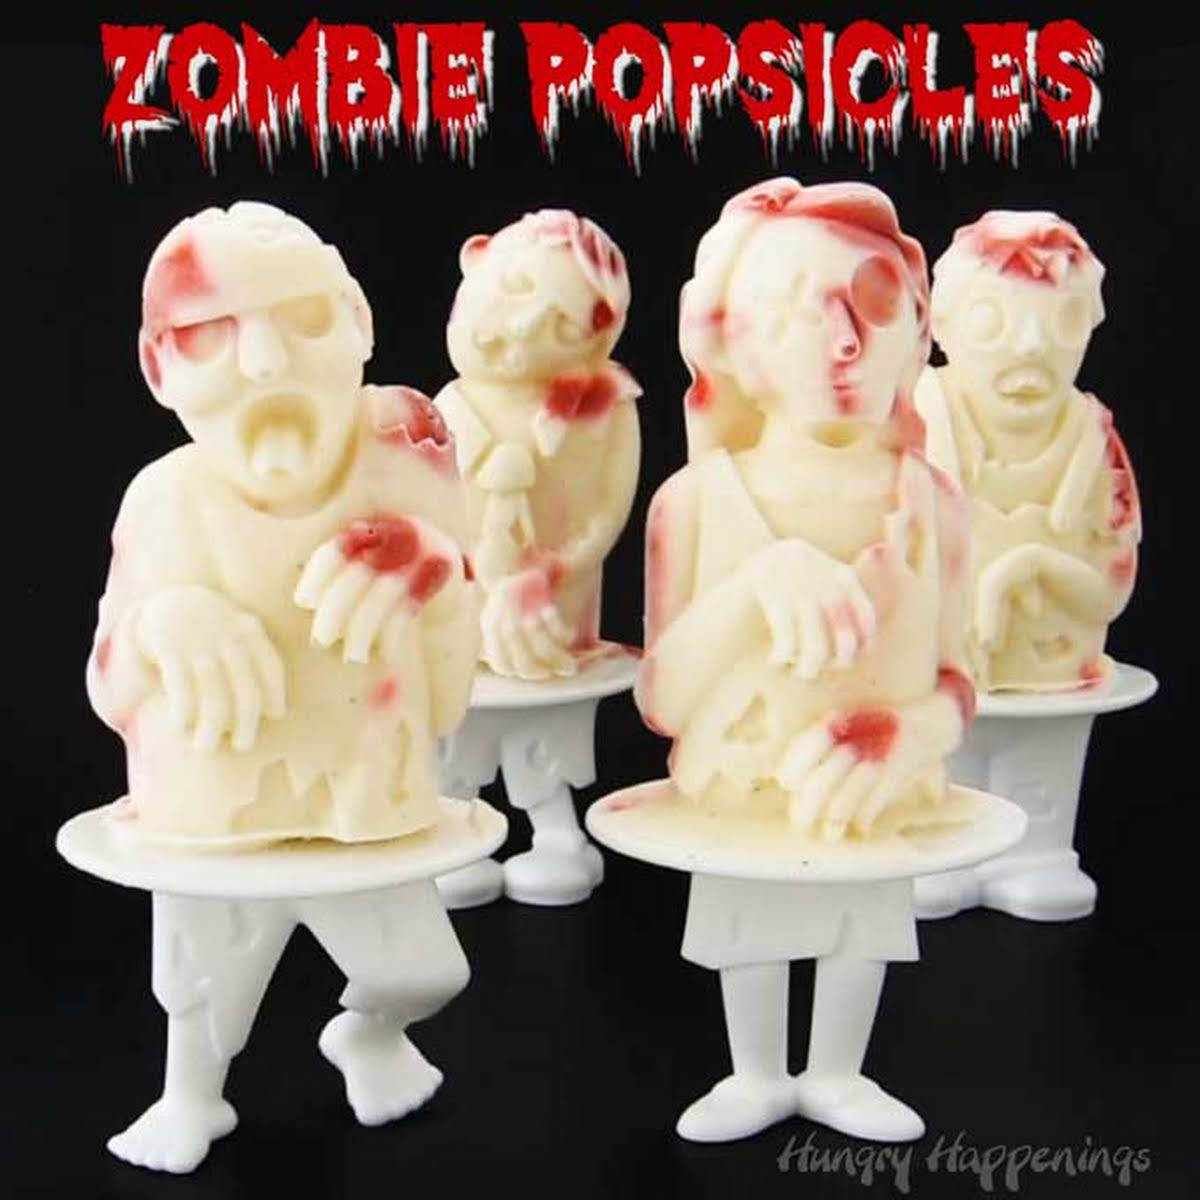 Zombie Popsicles - Bloody Raspberry Cheesecake Popsicle Zombies